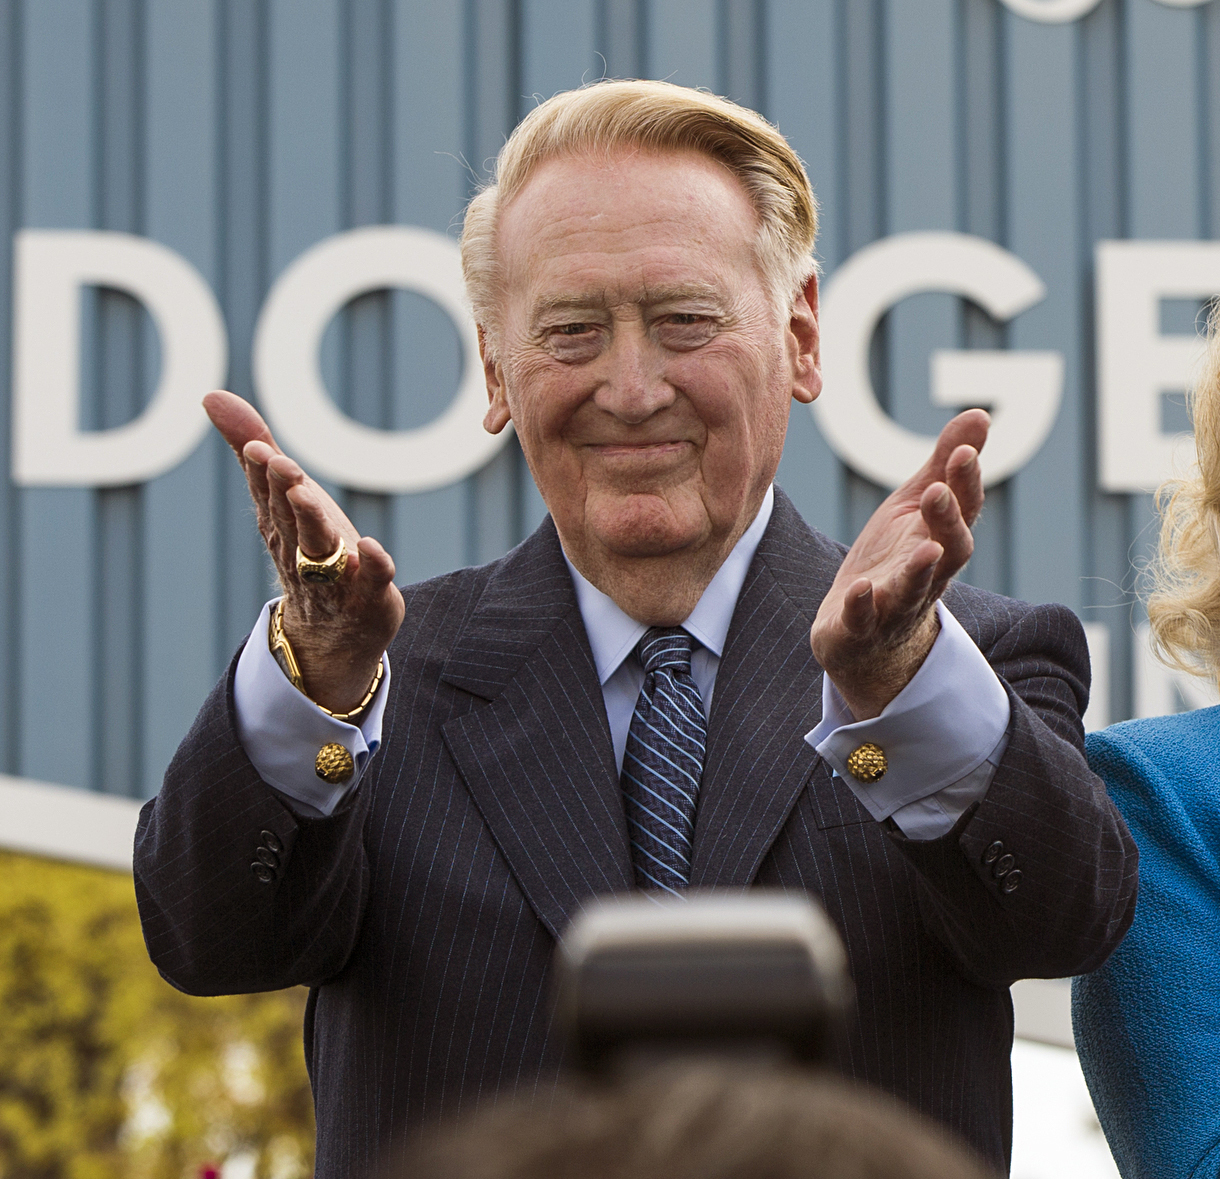 FILE - In this April 11, 2016, file photo, Los Angeles Dodgers legend Vin Scully thanks fans at a dedication ceremony unveiling a street sign of his namesake at the entrance to Dodger Stadium, in Los Angeles. Scully begins his final homestand behind the m